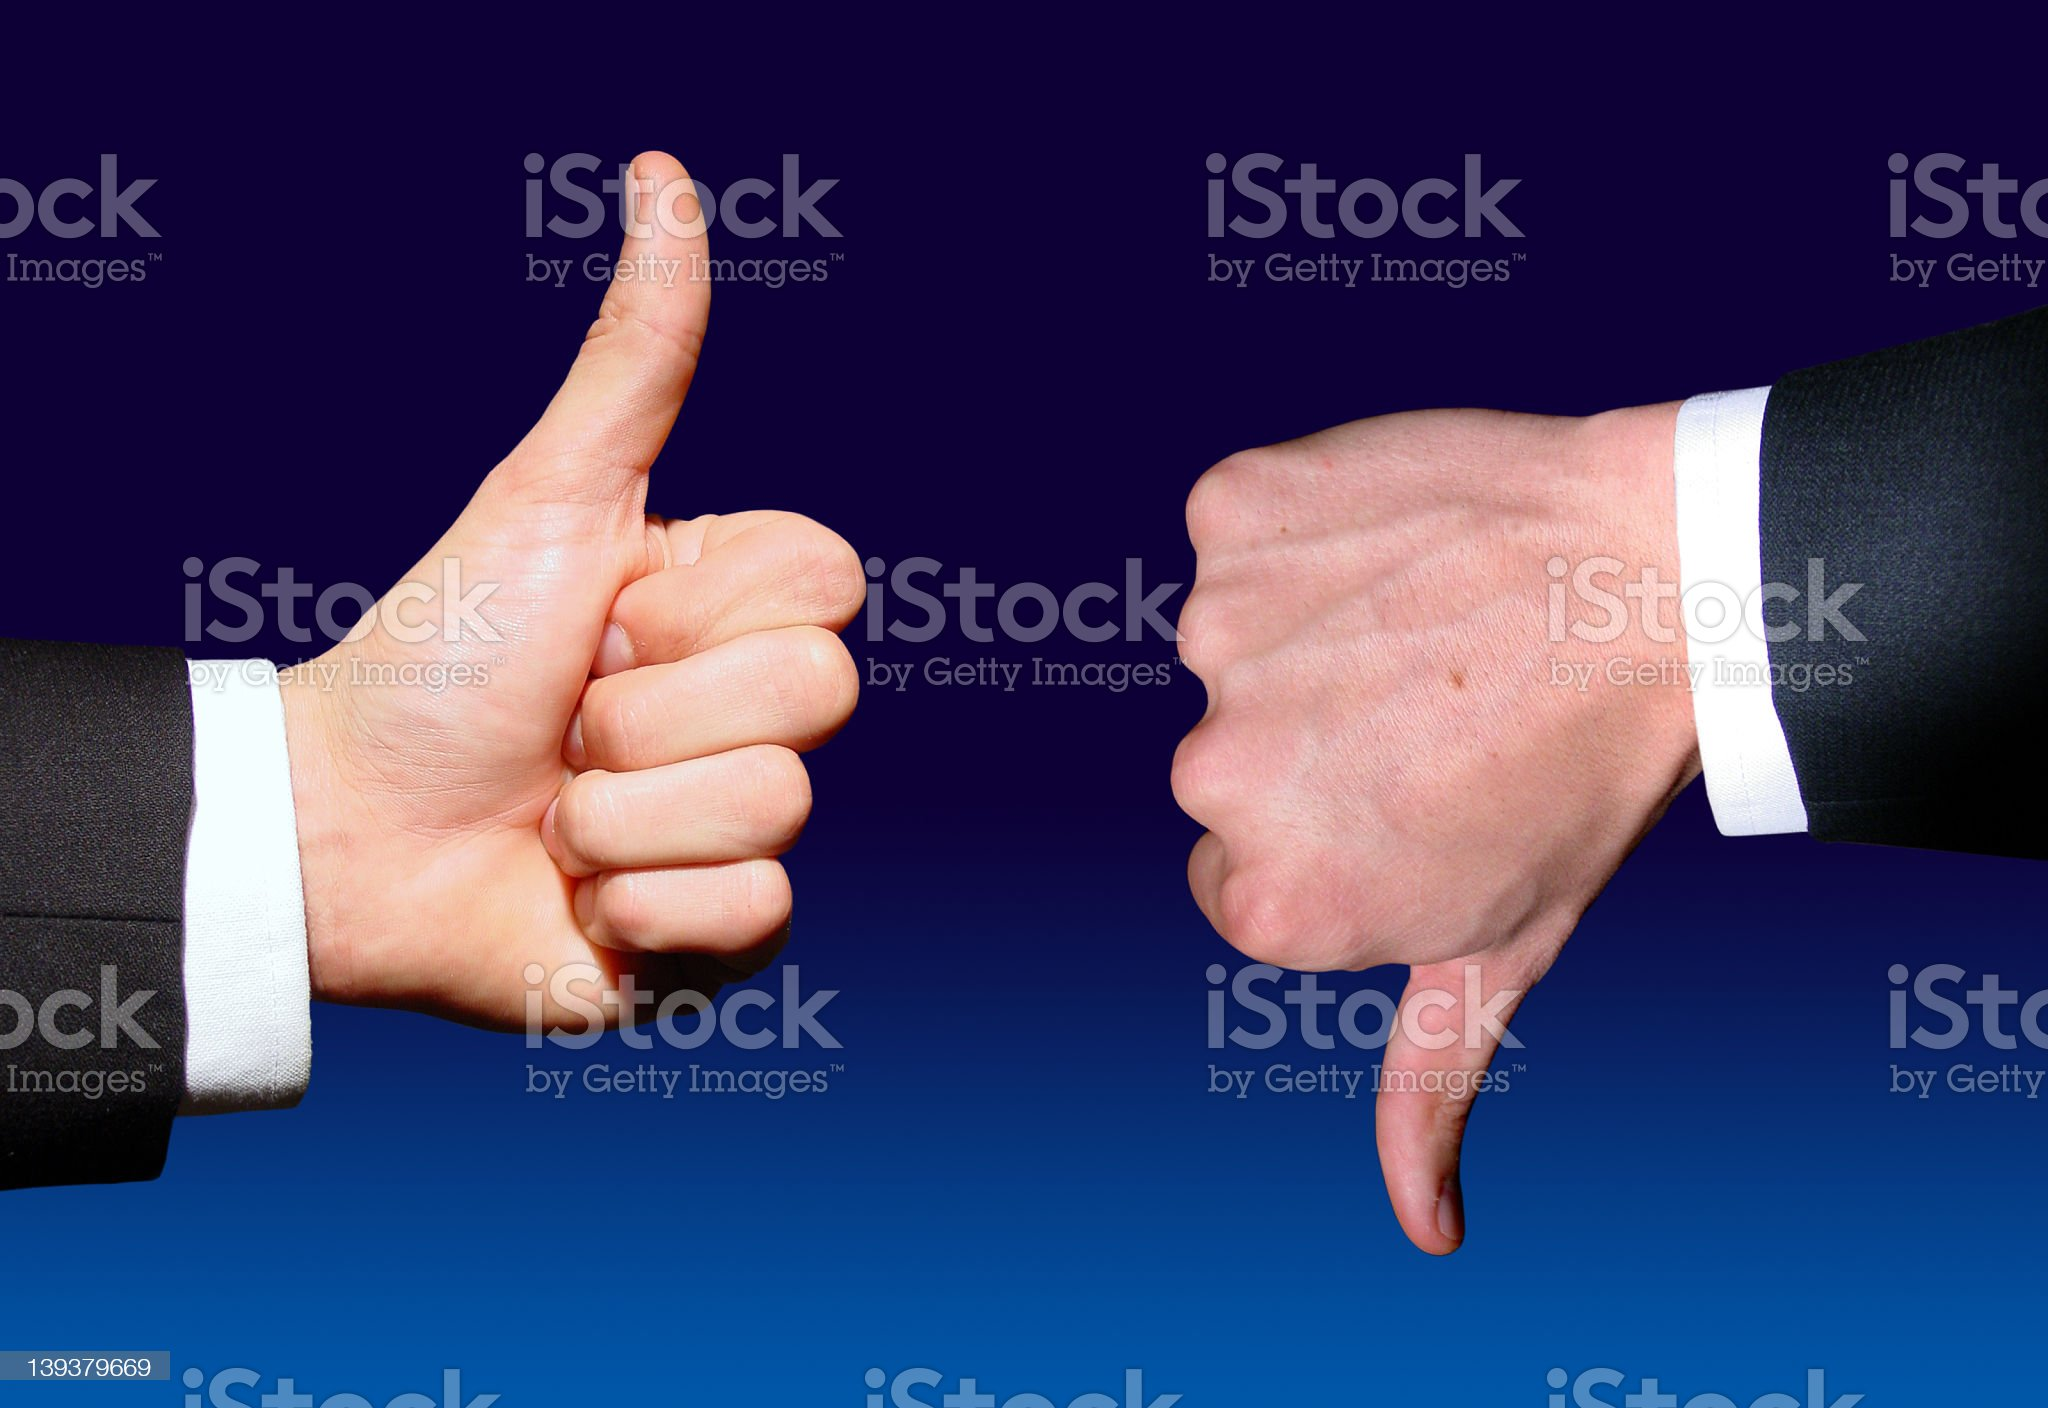 Businessman giving thumbs up while another gives thumbs down royalty-free stock photo